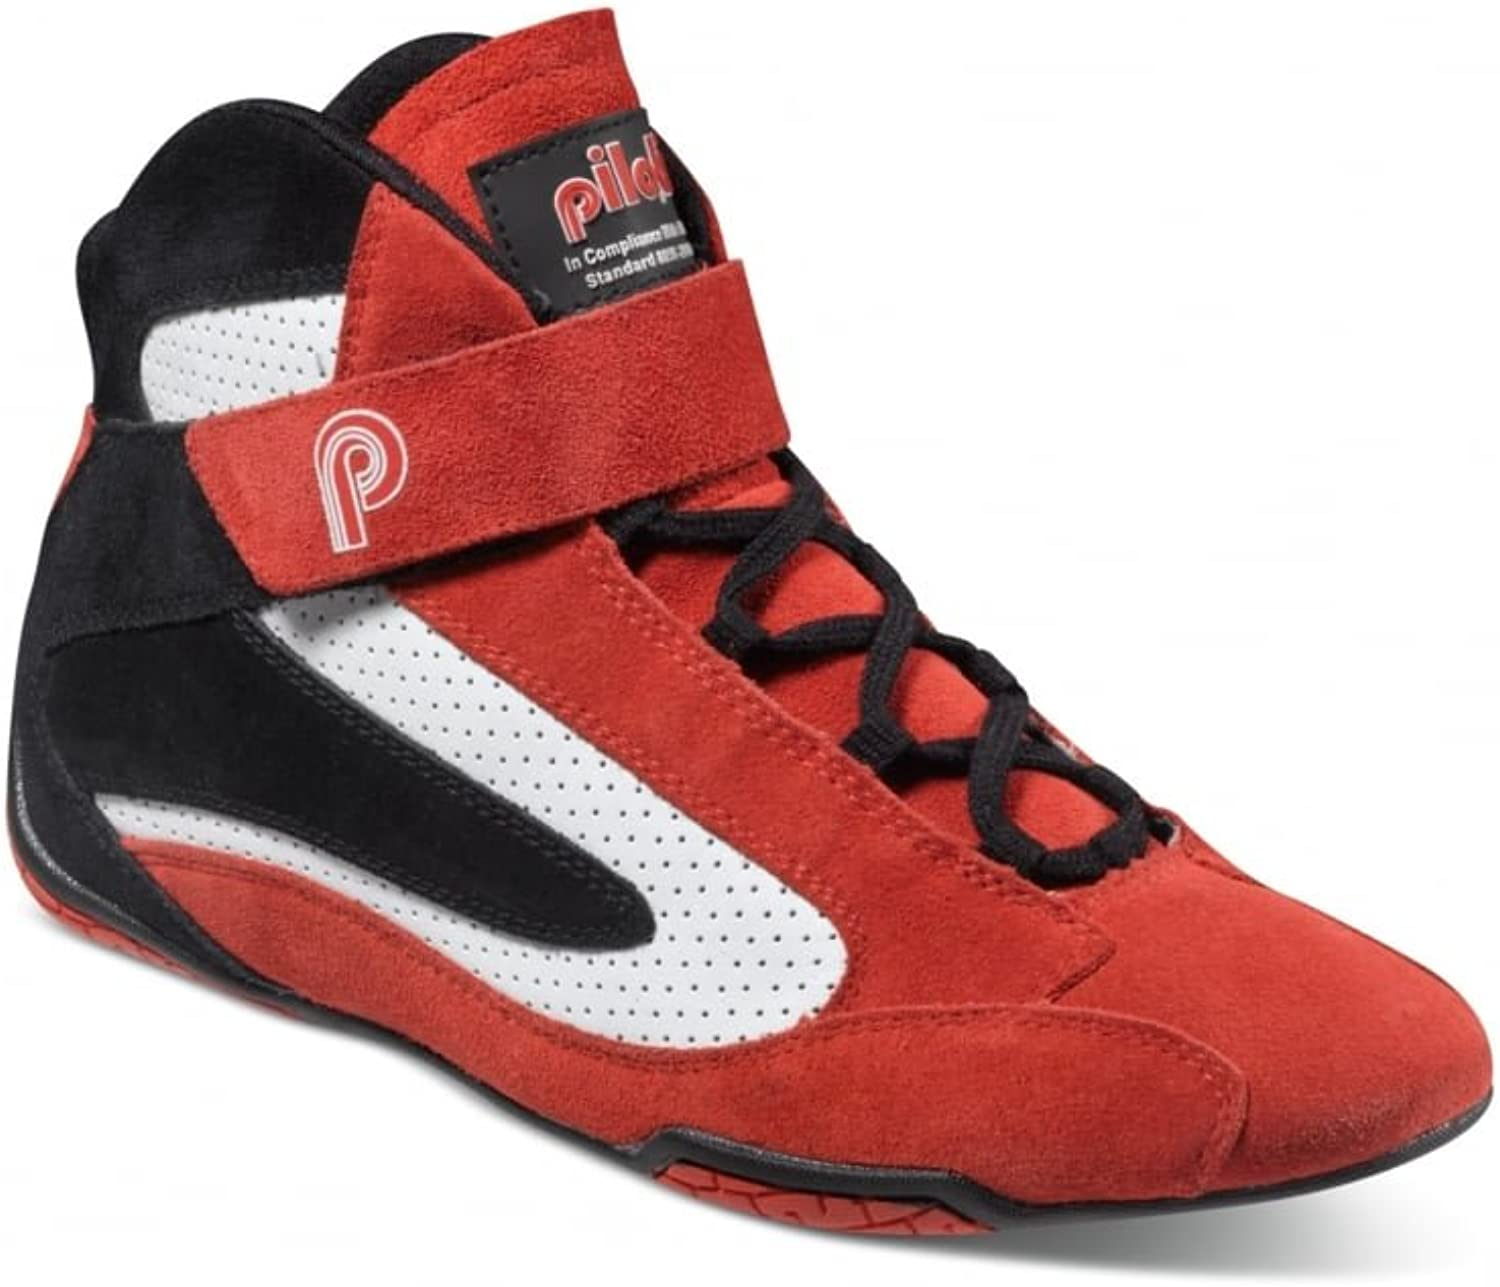 Competizione FIA Approved Racing Boots, Suede and Leather, Red Red Red with Black and White Detail B00XZXPIMO  95be5d